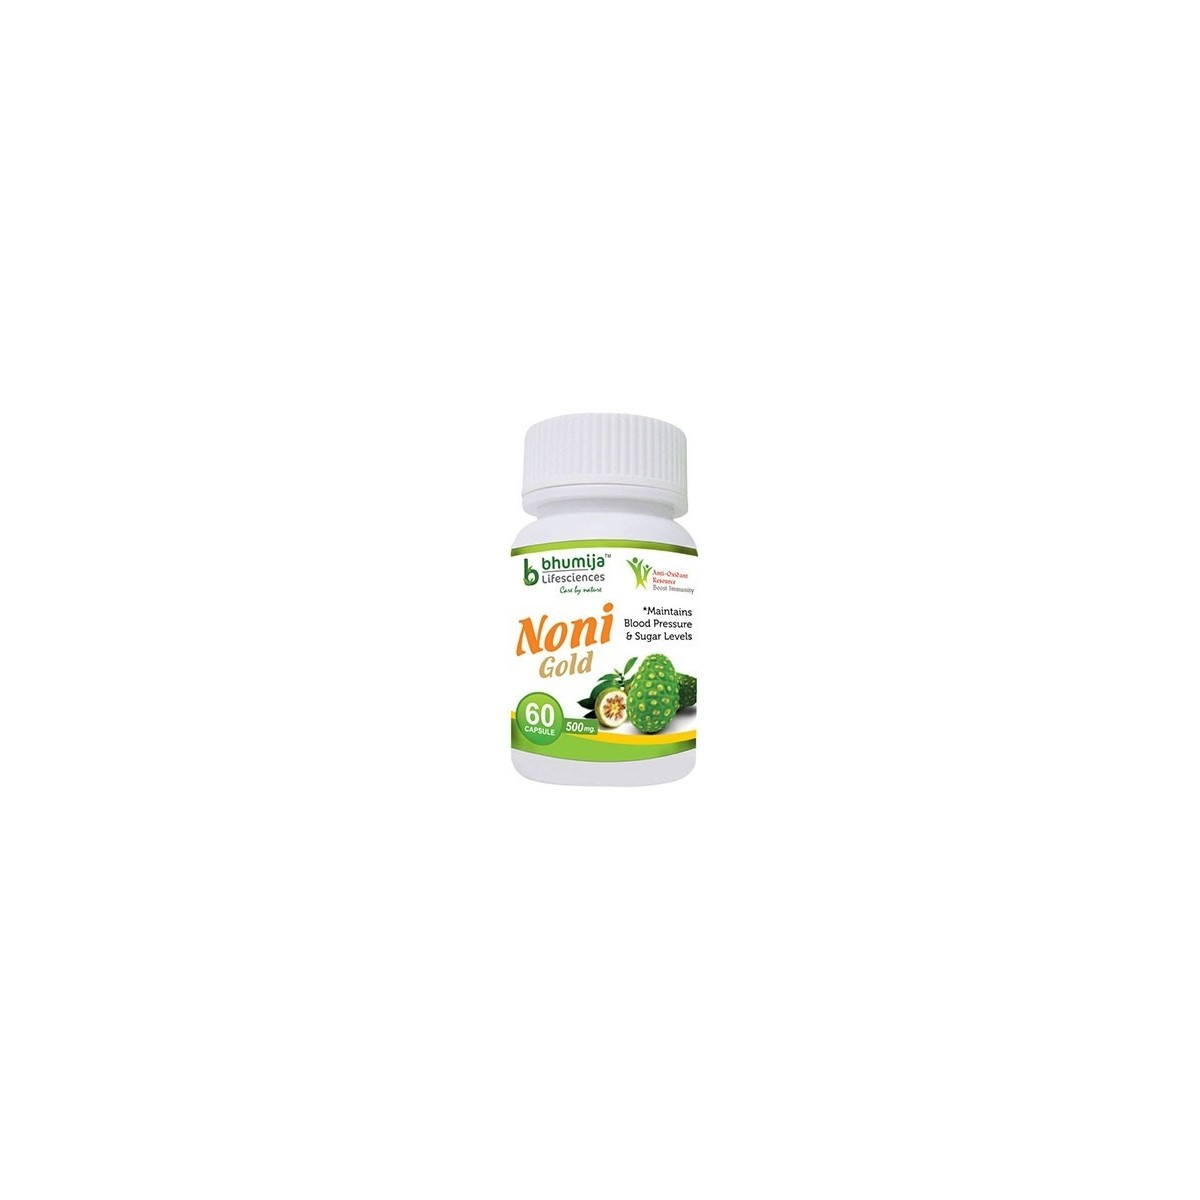 Bhumija Lifesciences Noni Gold Cap 60